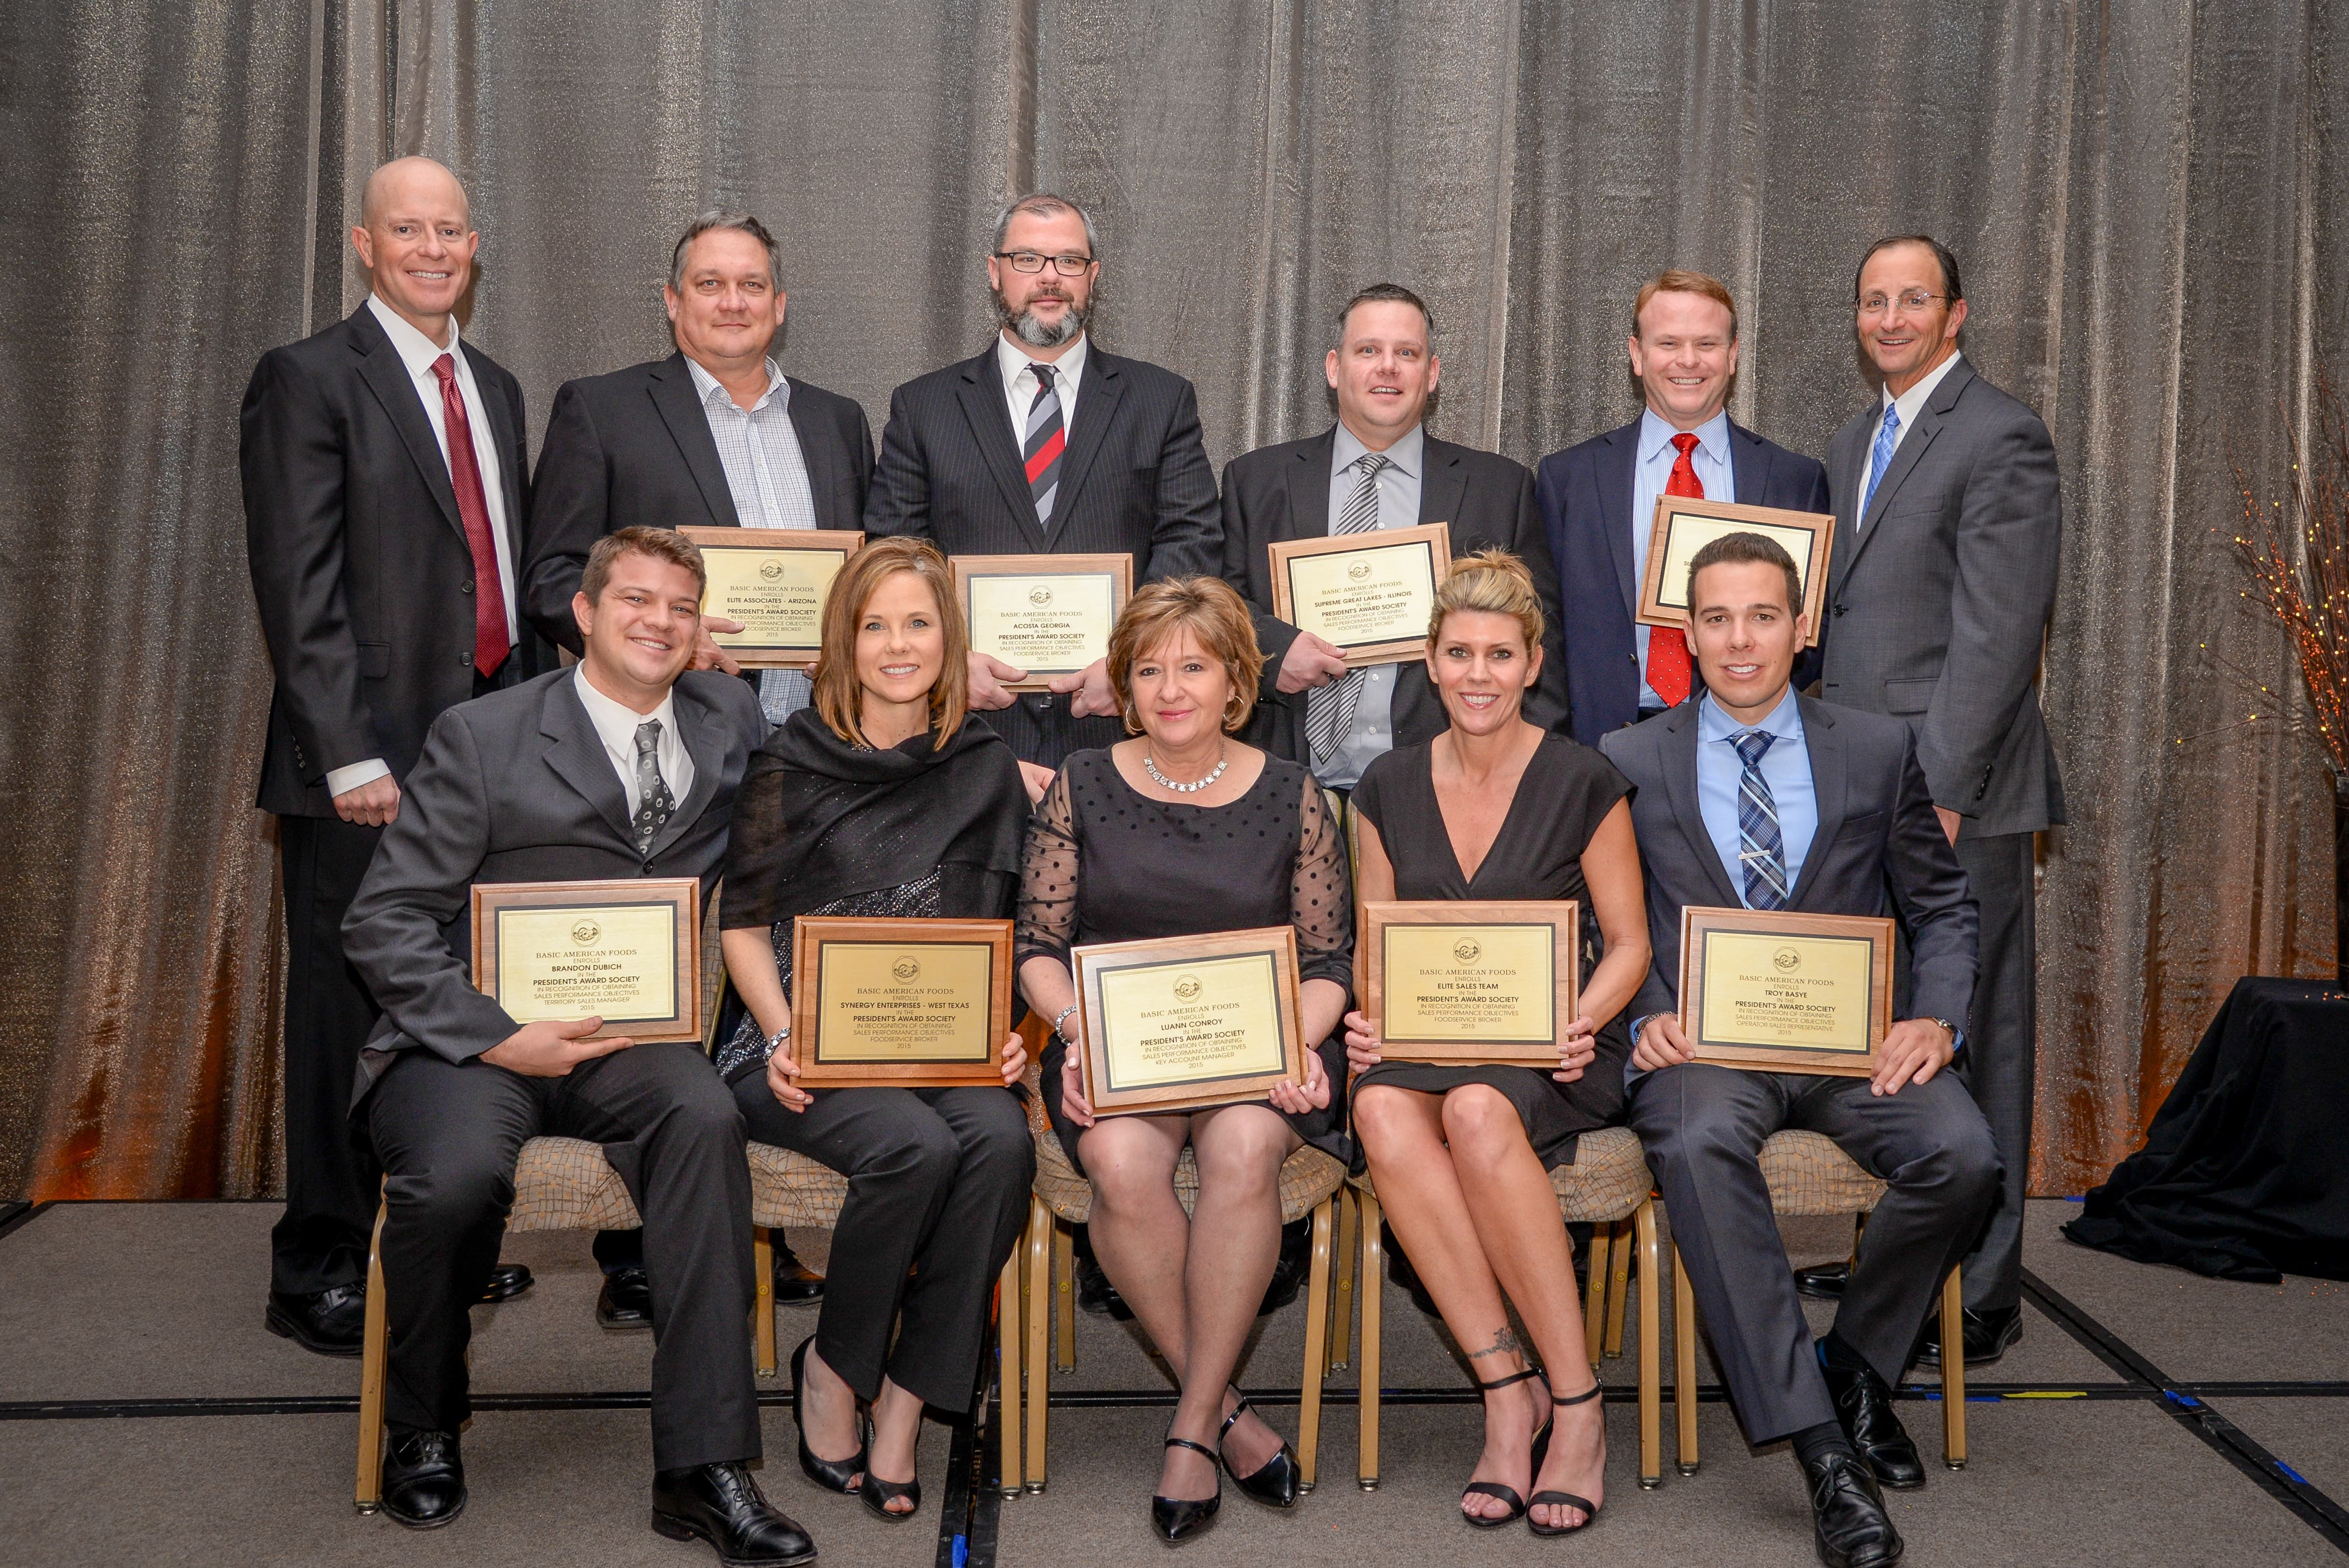 Award society recognizes individuals or brokers that